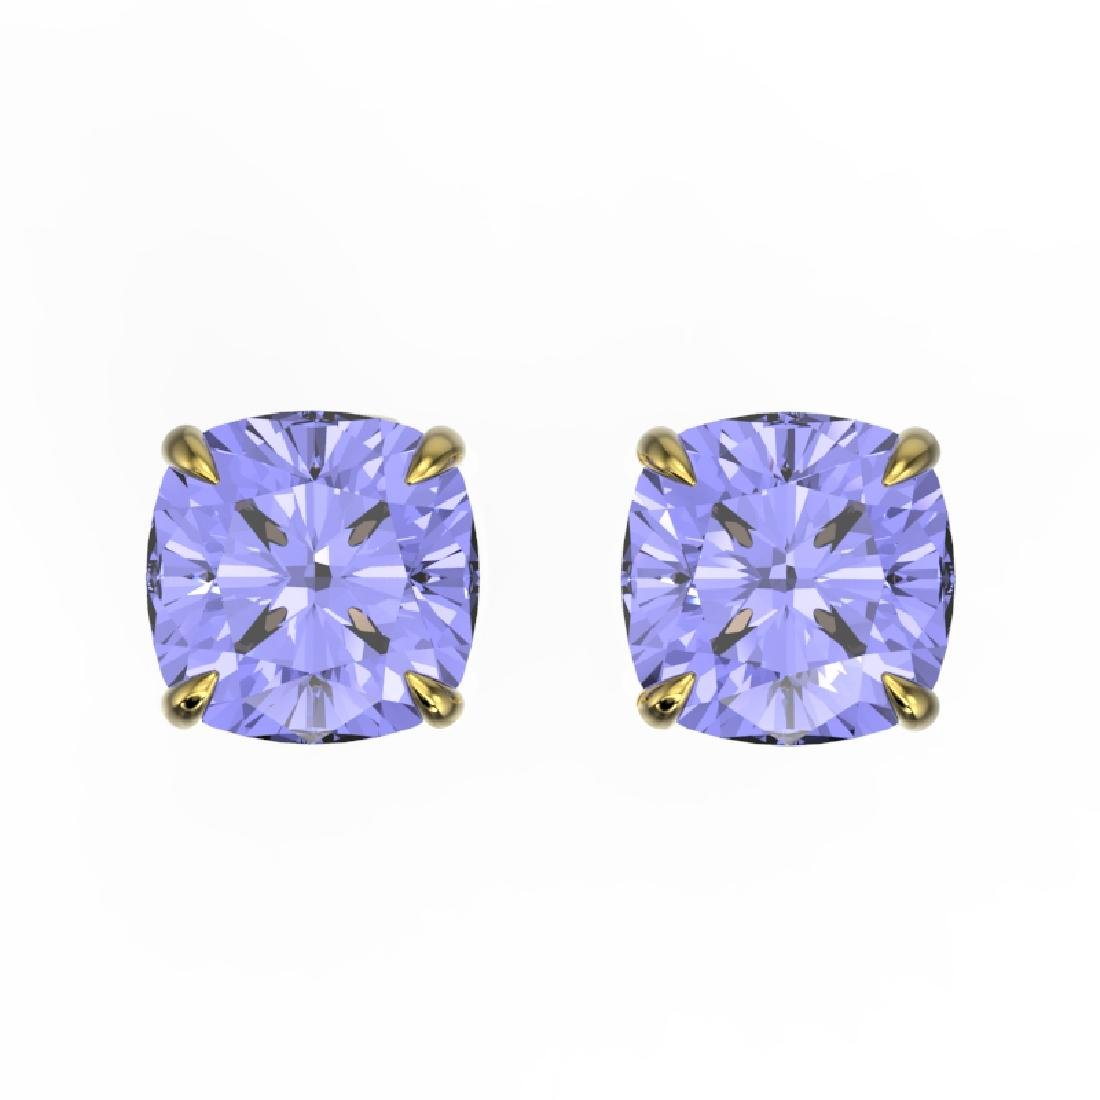 4 CTW Cushion Cut Tanzanite Designer Solitaire Stud